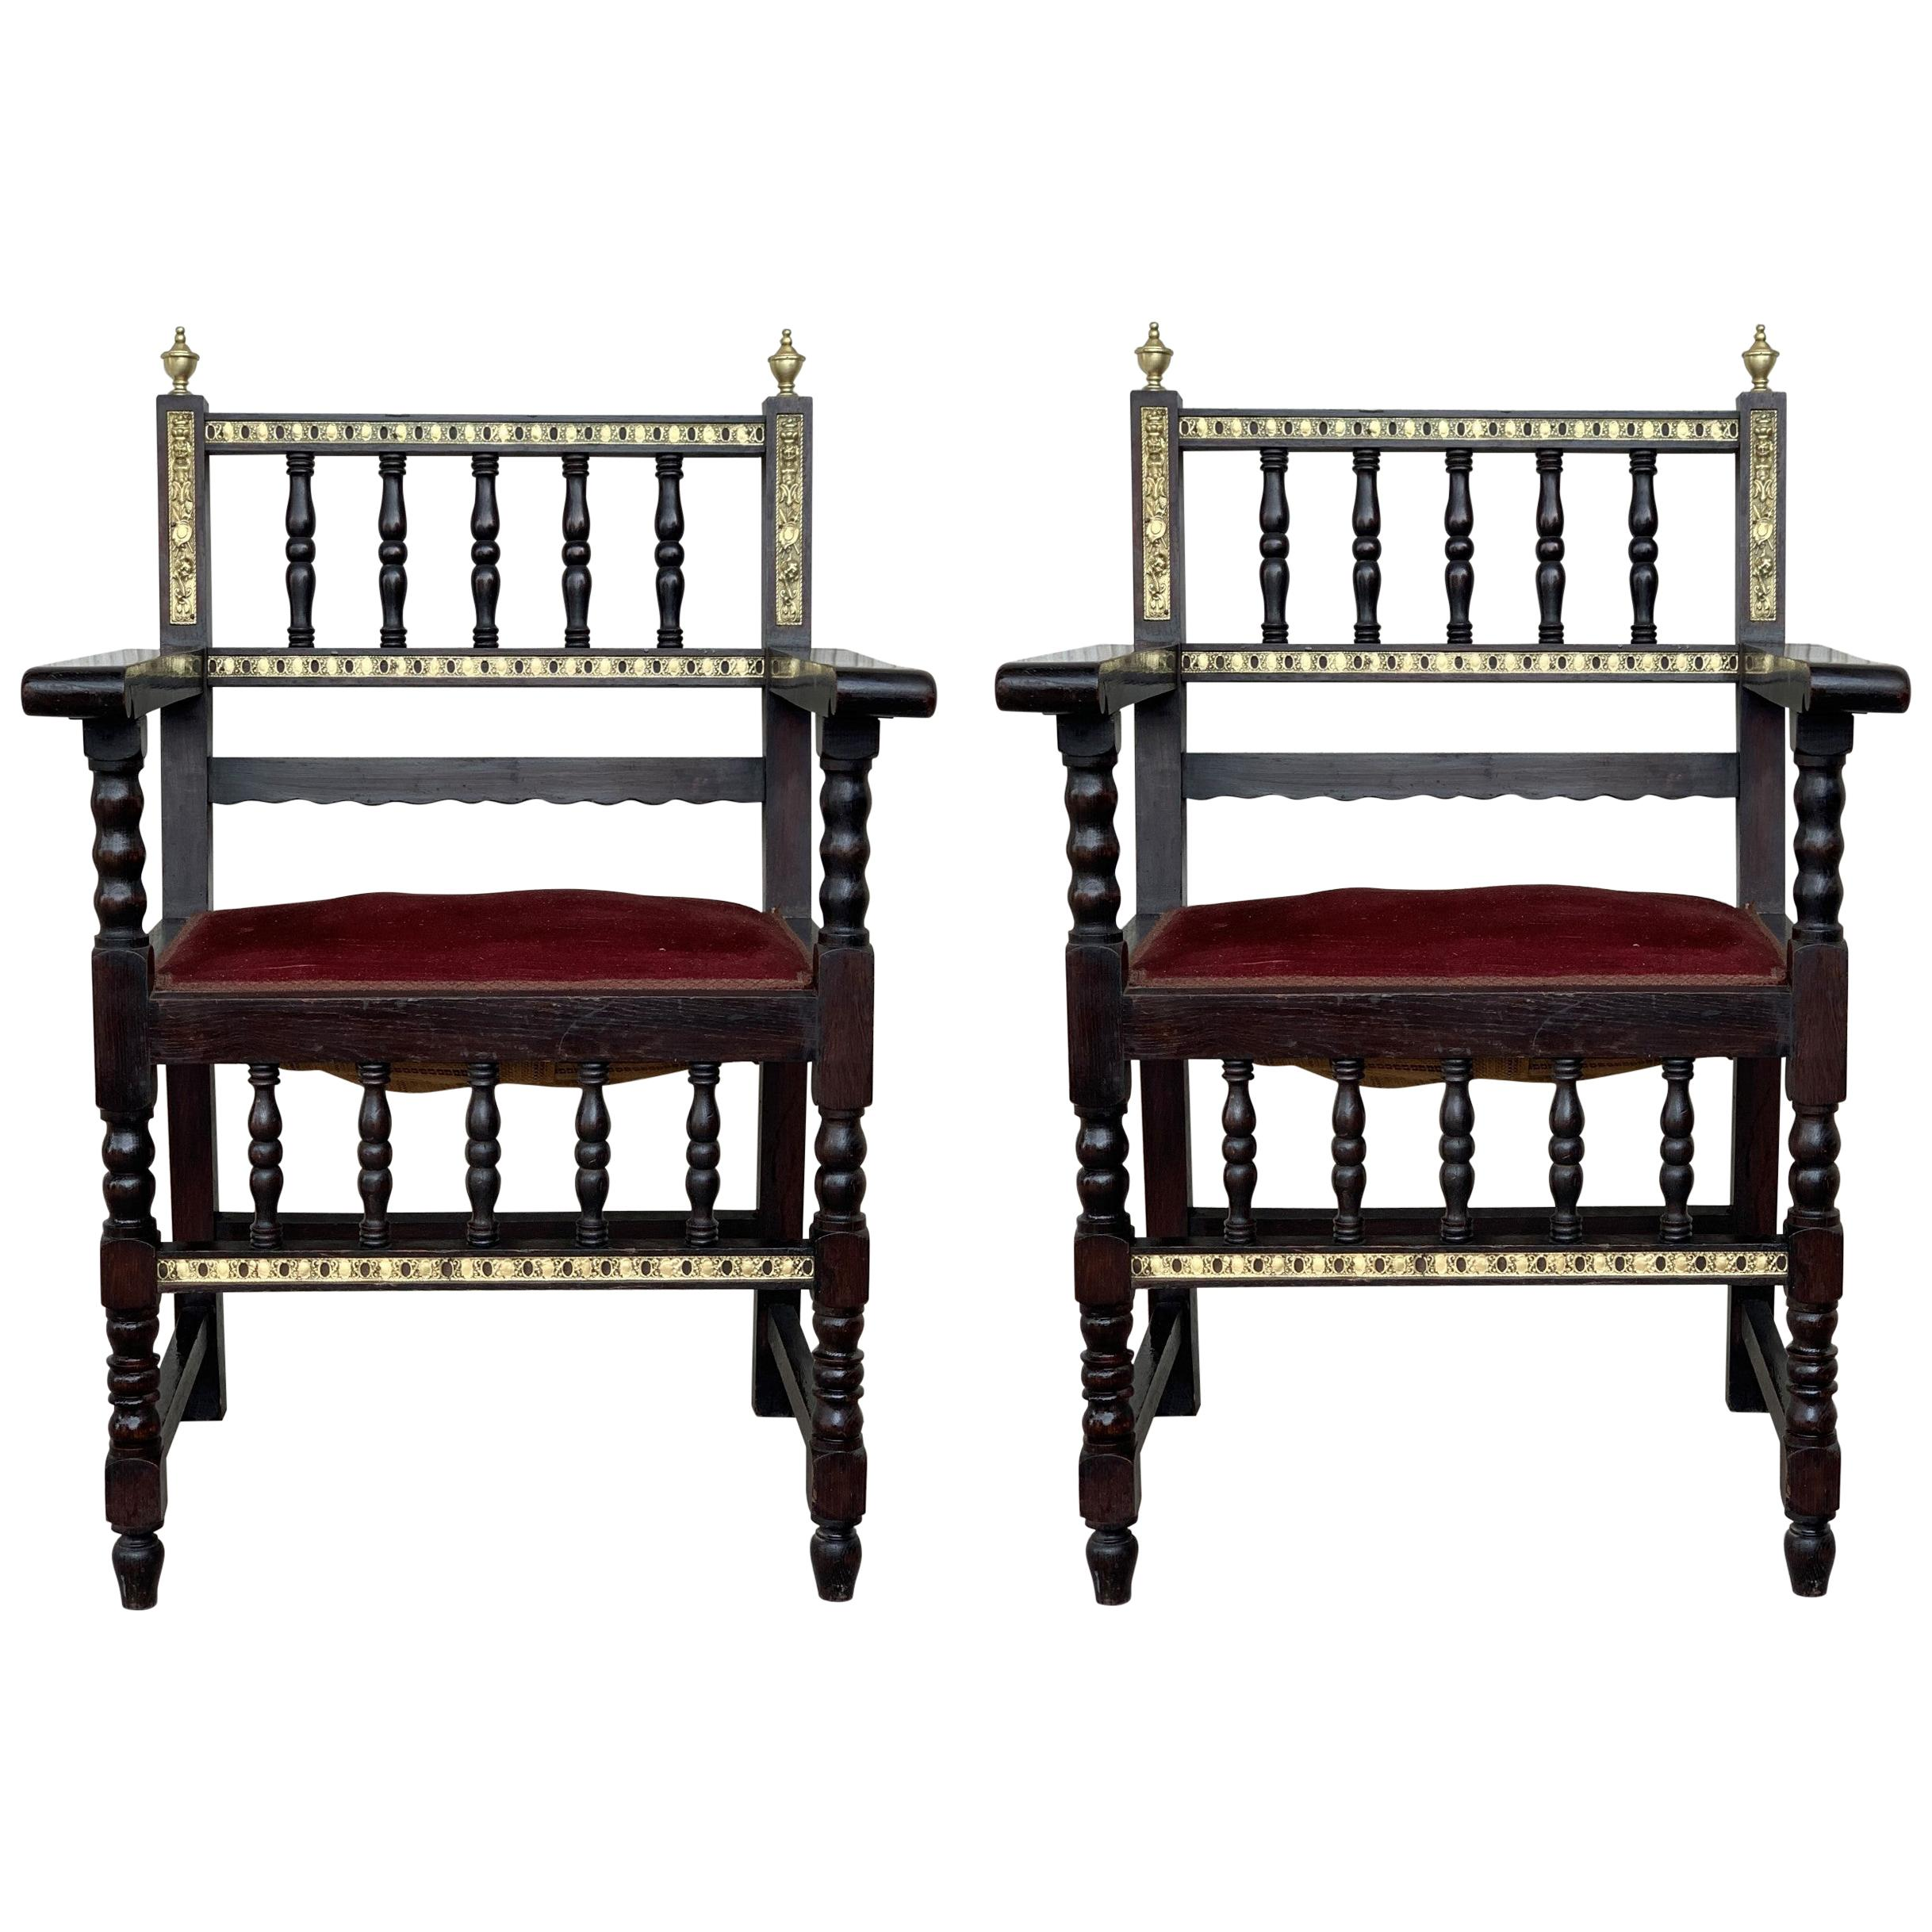 Pair of Spanish Armchairs with Bronze Details and Red Velvet Upholstery